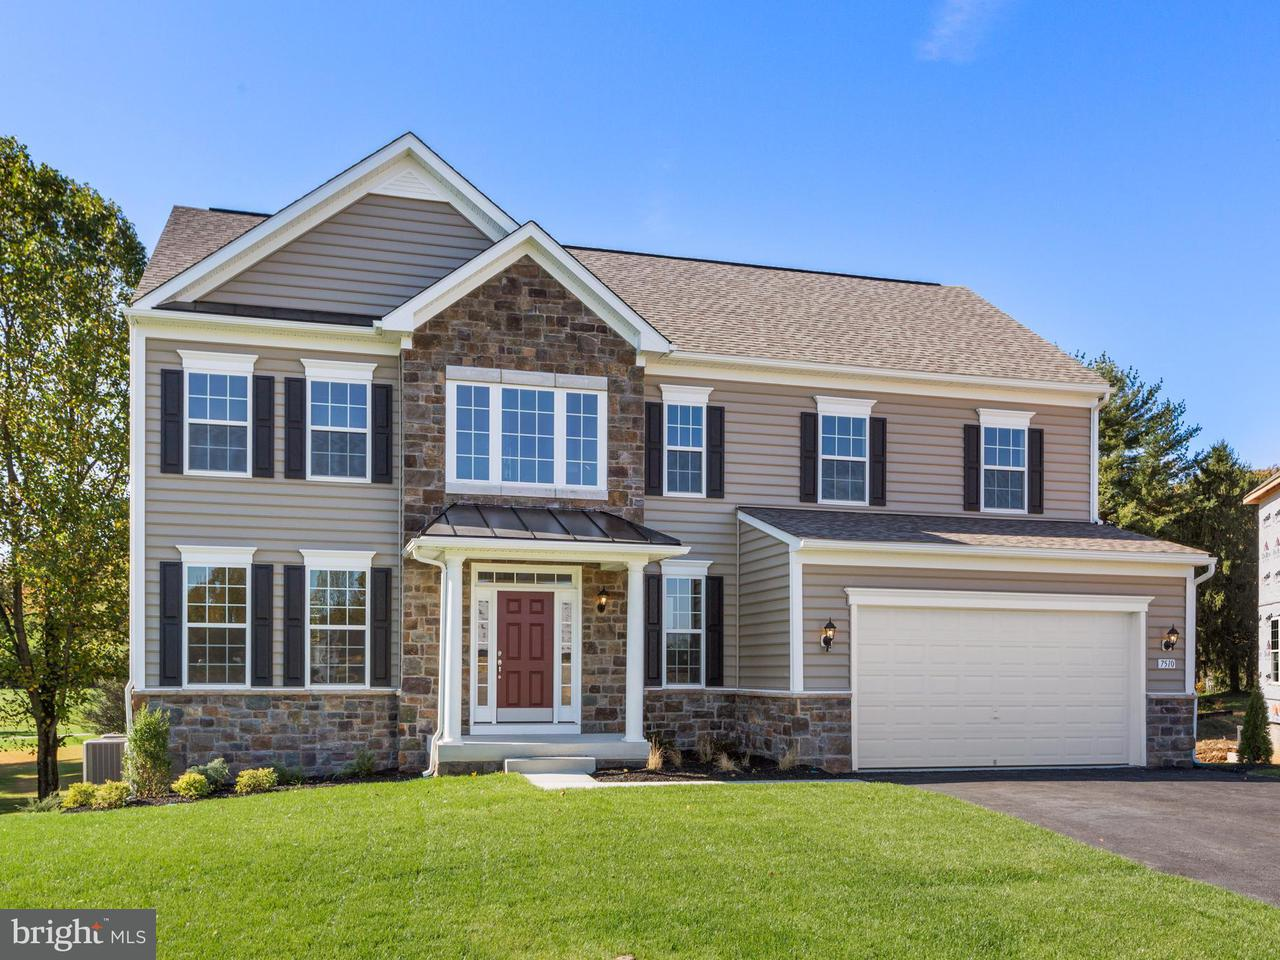 Single Family Home for Sale at 7510 FISHER Court 7510 FISHER Court Jessup, Maryland 20794 United States